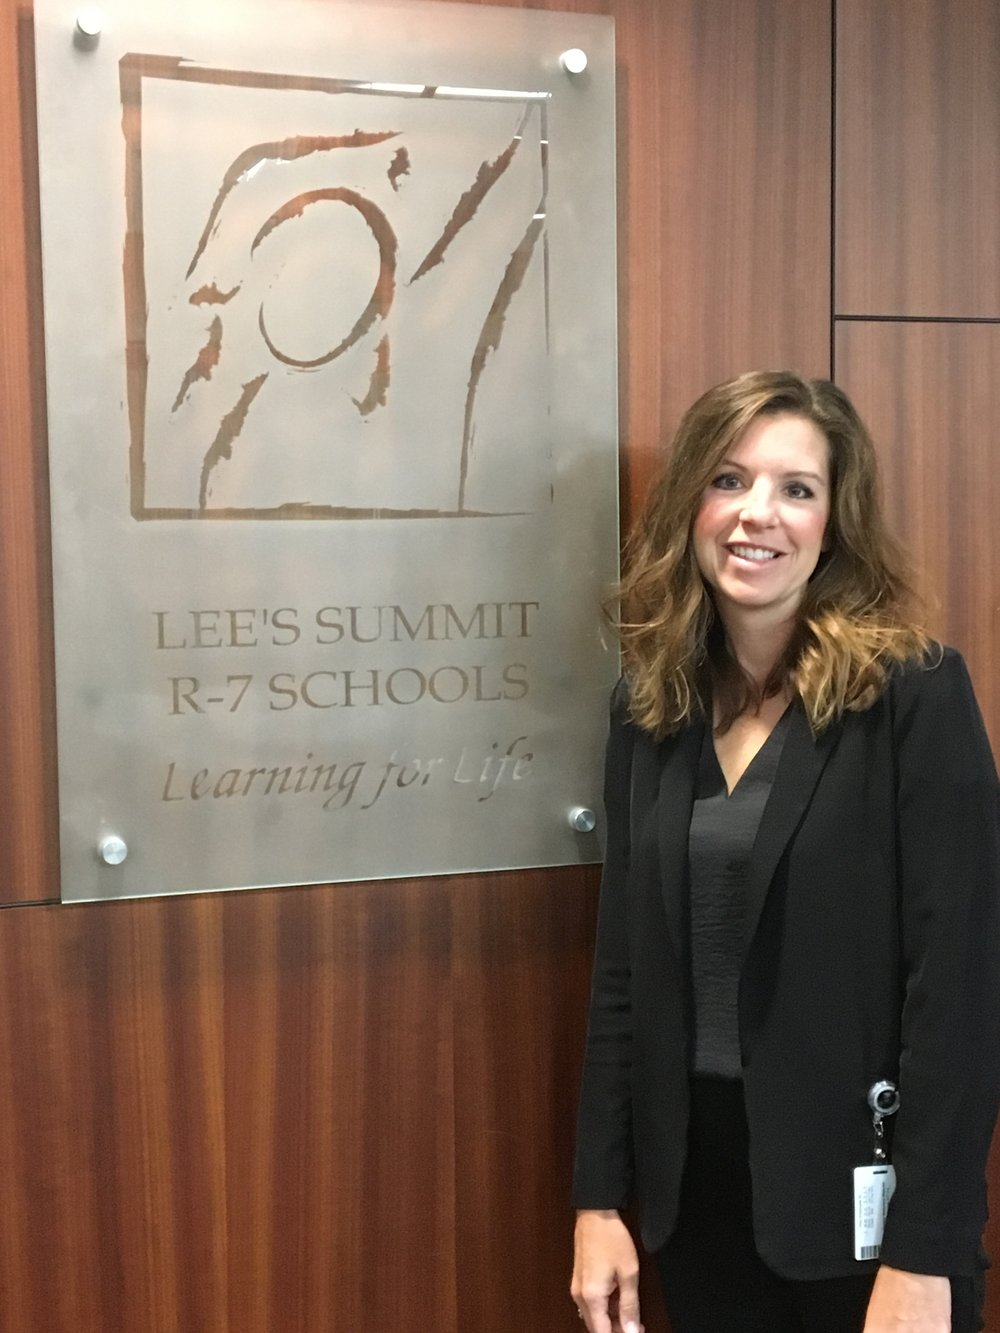 Kelly Wachel is the executive director of communications for the Lee's Summit R-7 School District.